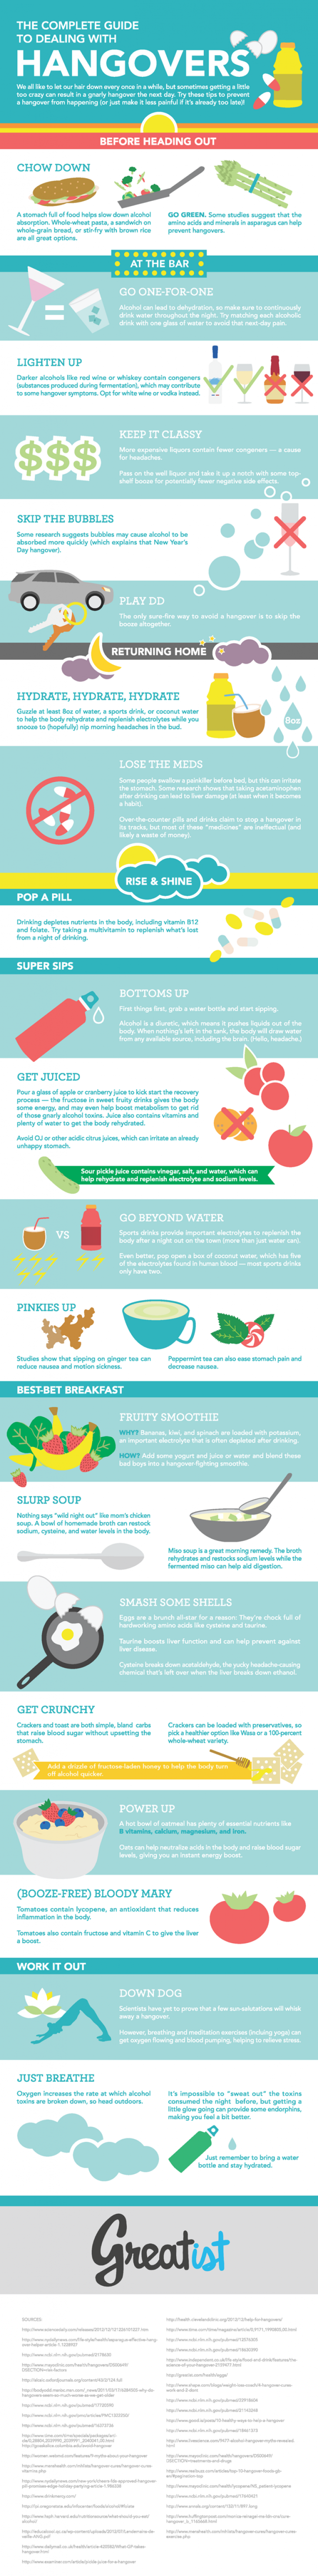 the complete guide to dealing with hangovers [infographic] | this is